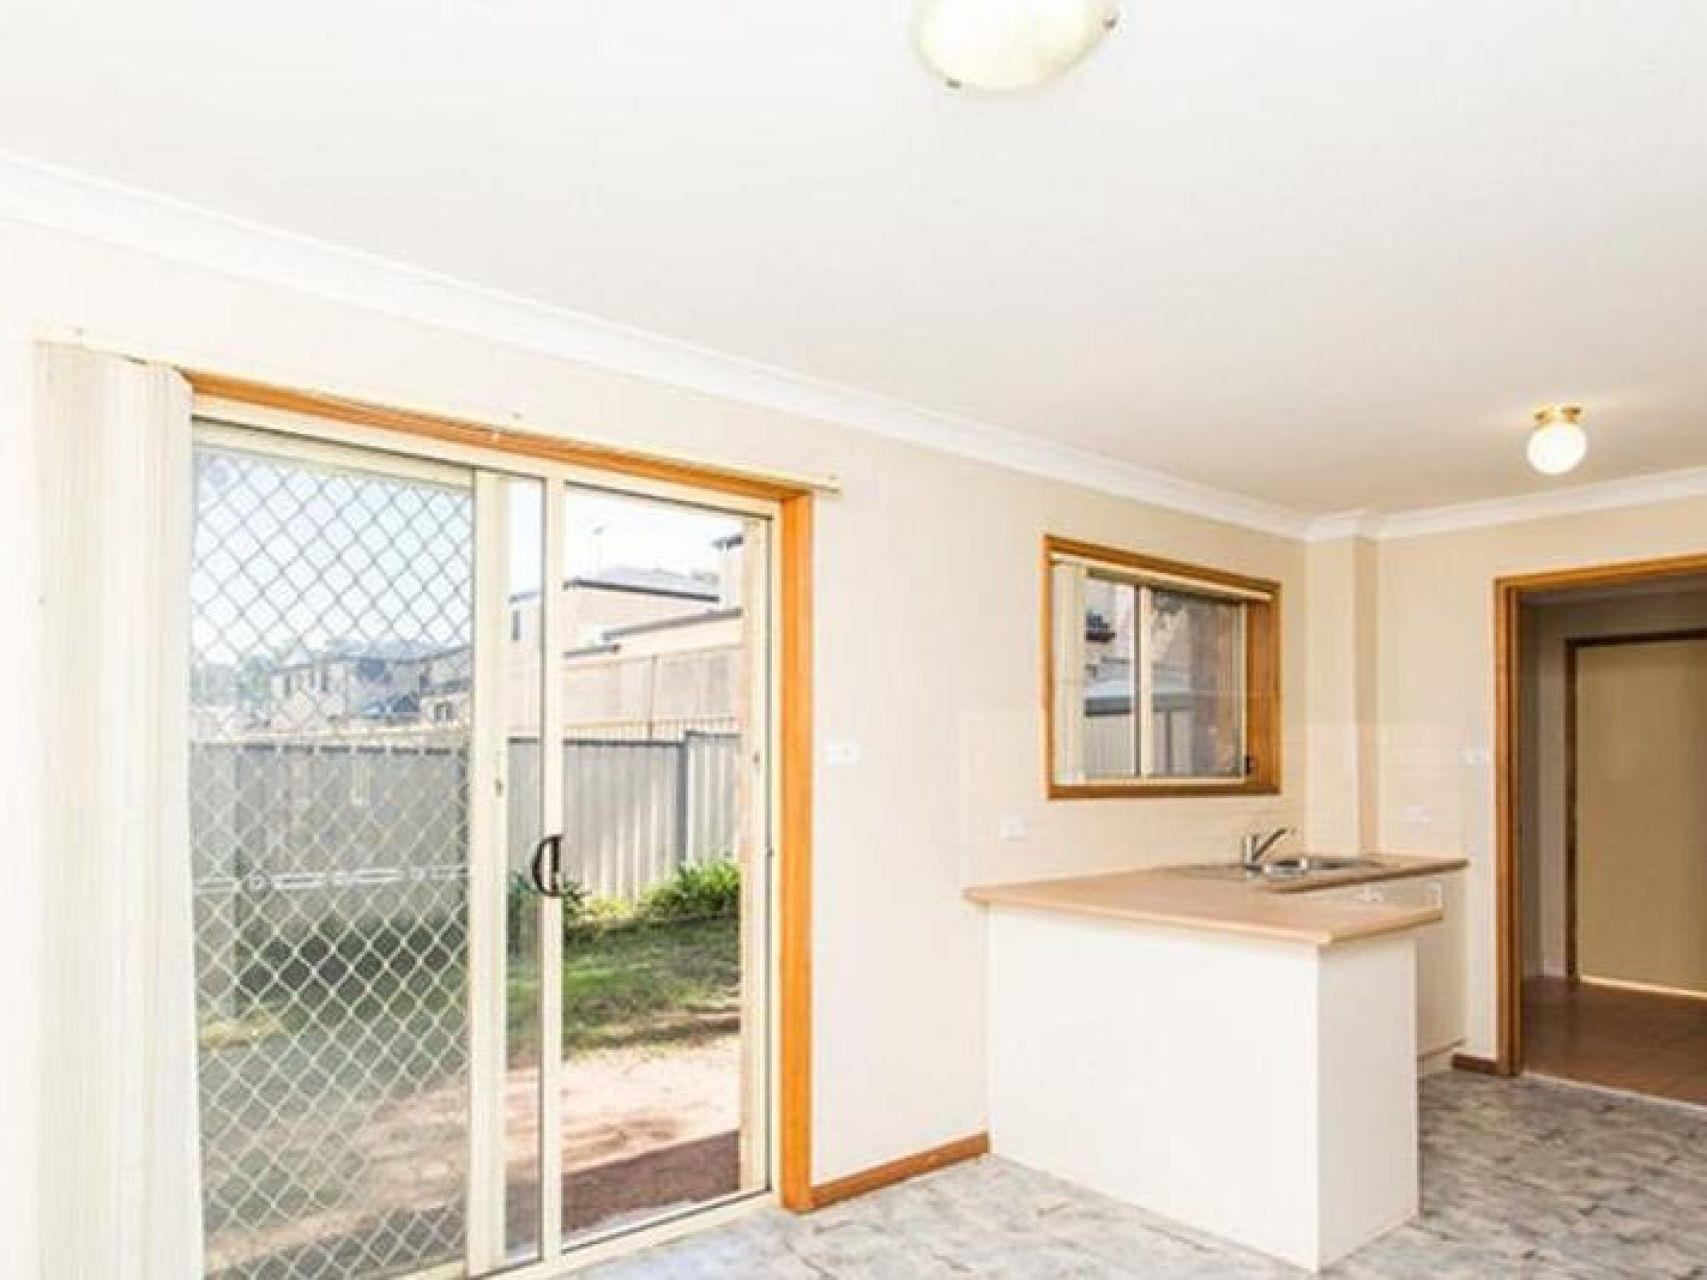 11/10 Methven St, Mount Druitt, NSW 2770